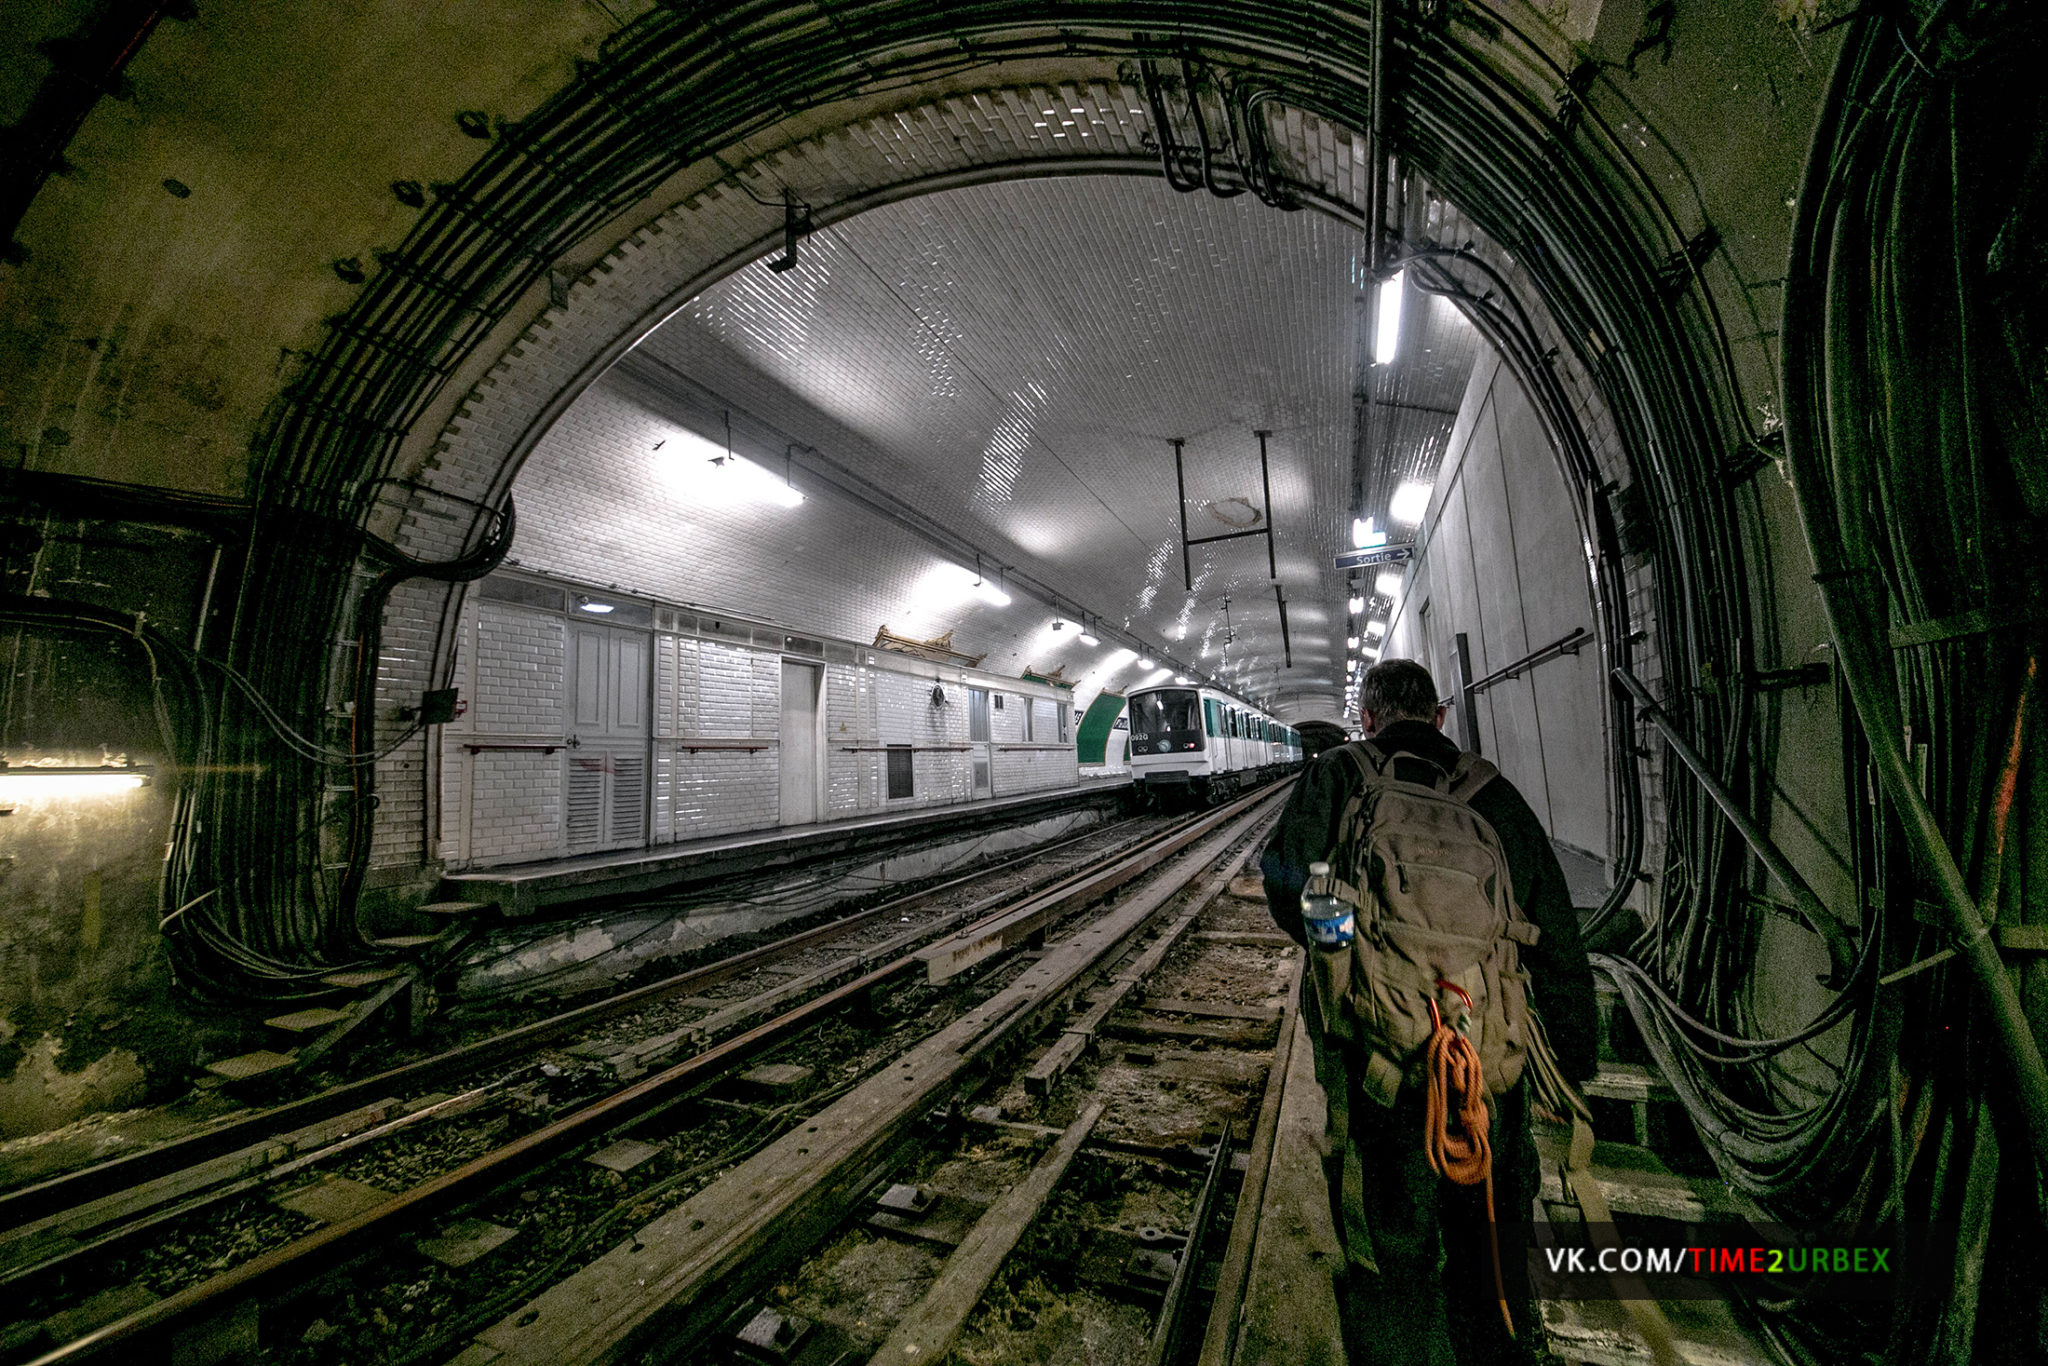 51 7 GHOST STATIONS OF THE PARIS METRO AND HOW TO GET INTO THE ILLEGALLY + UNUSUAL TUNNELS + RER